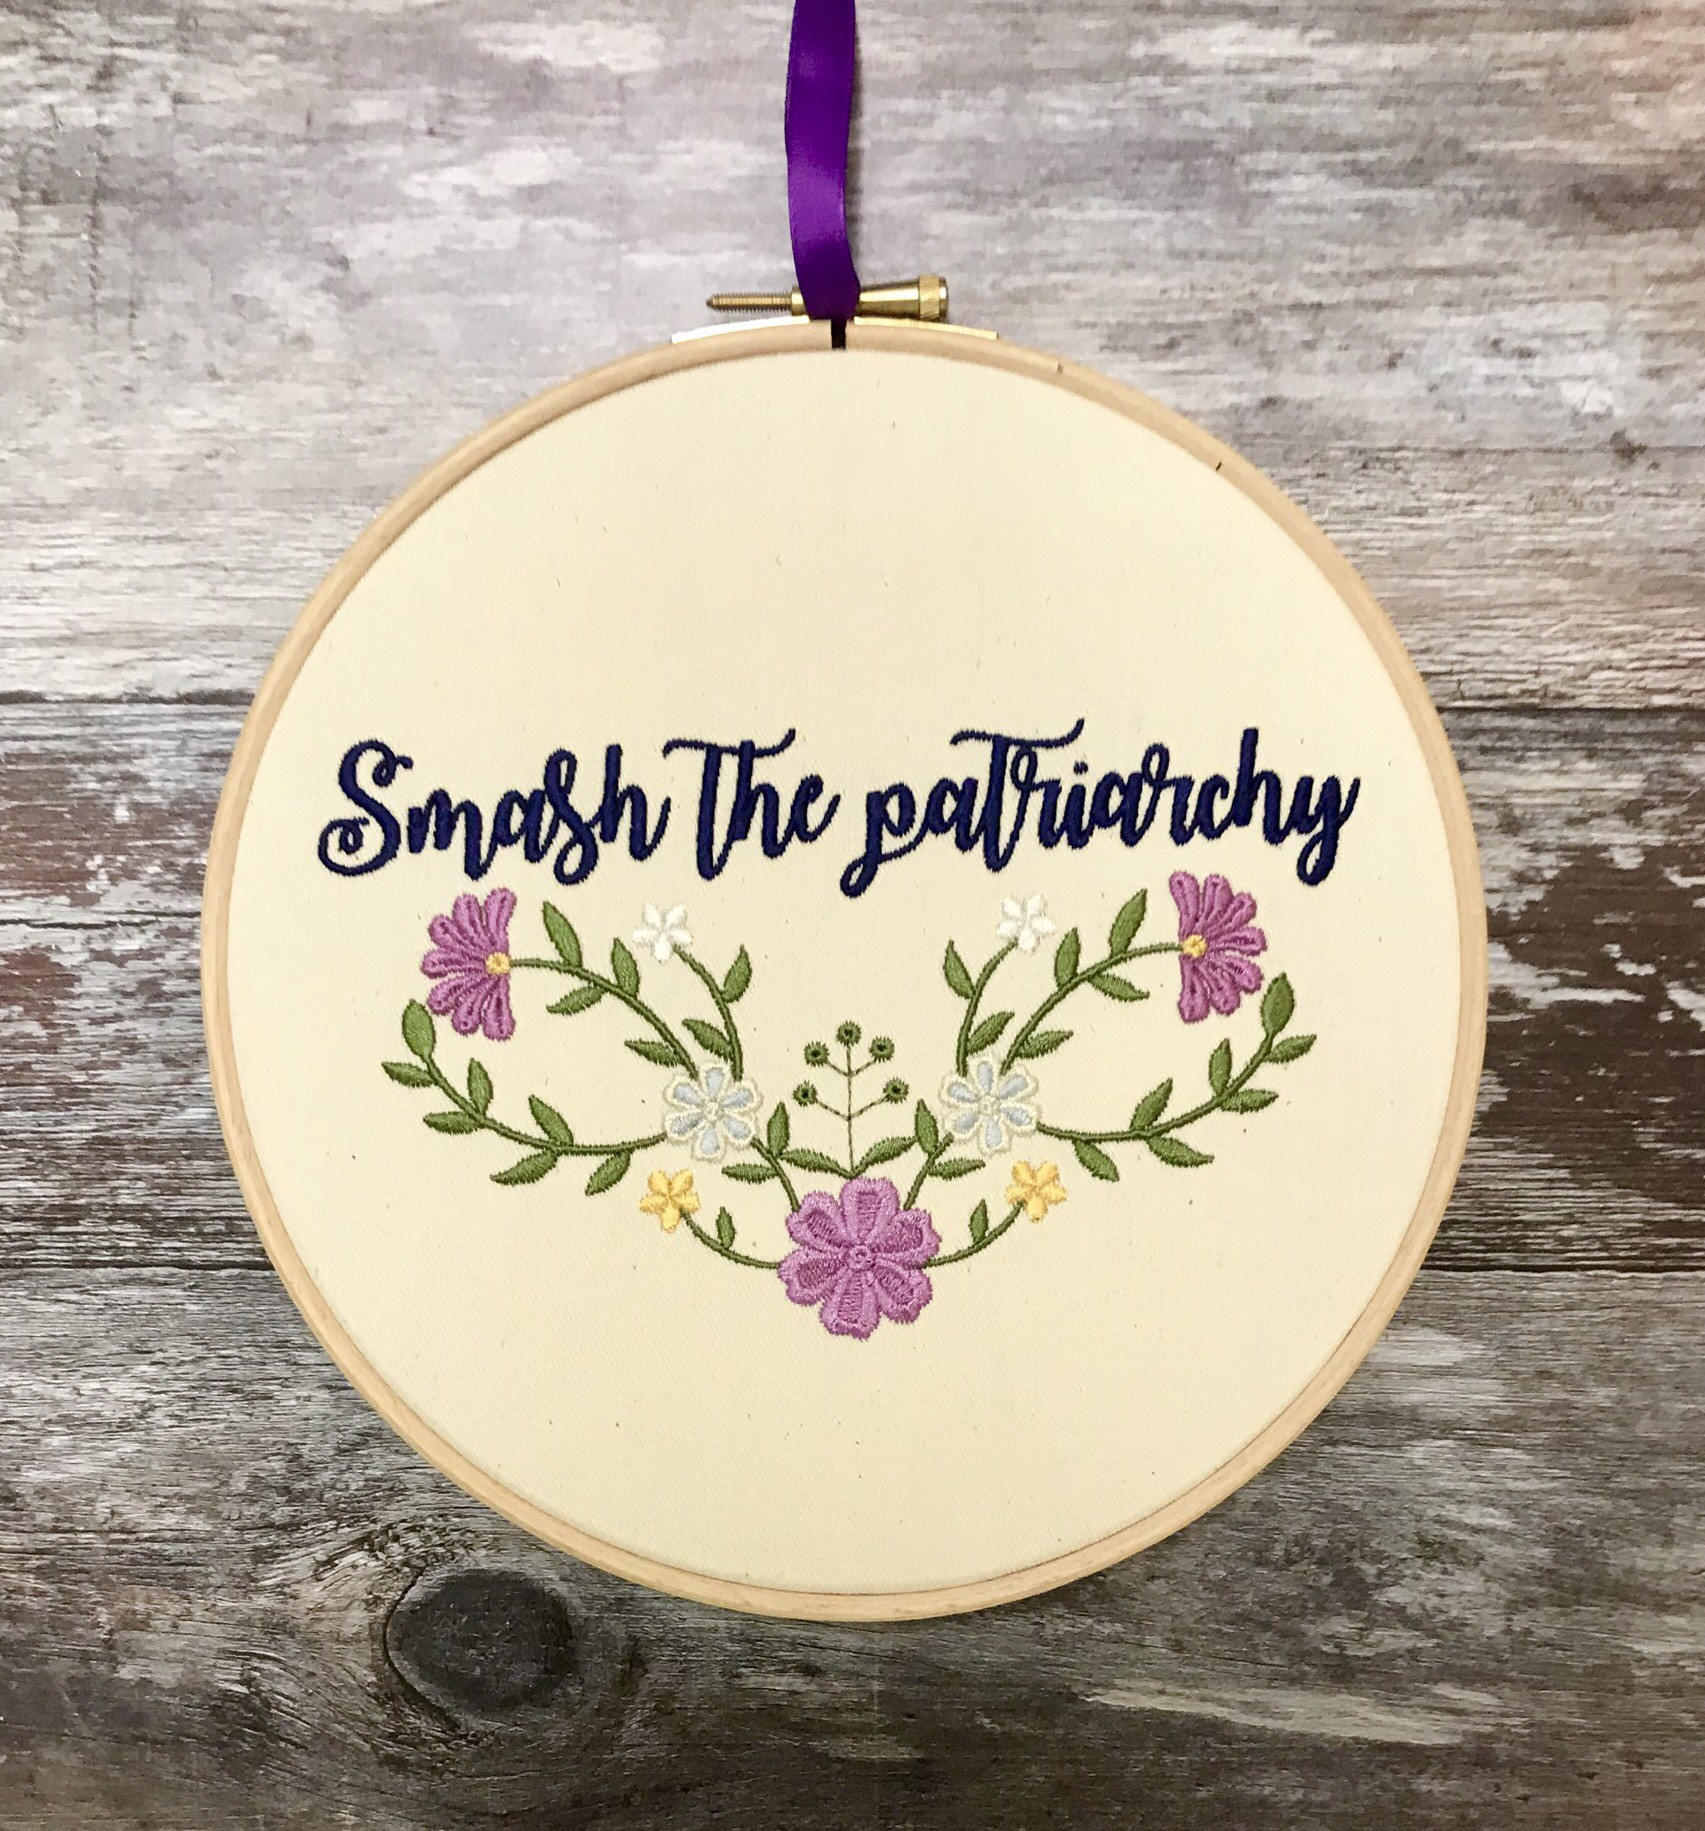 Smash the patriarchy, Embroidery hoop art